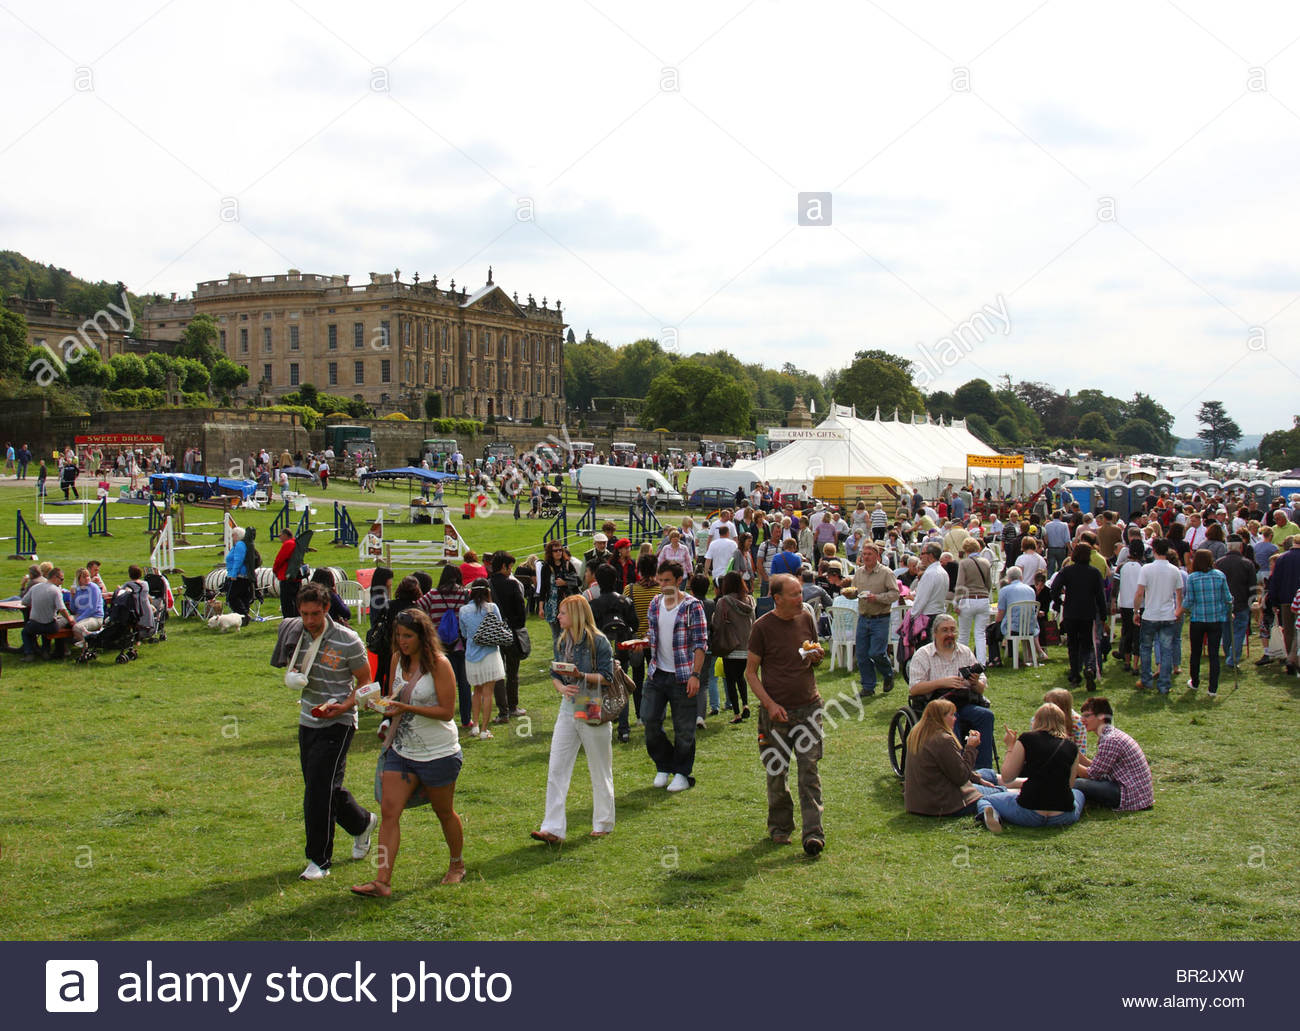 Visitors at the Chatsworth Game Fair, Chatsworth, Derbyshire, Engalnd, U.K. - Stock Image